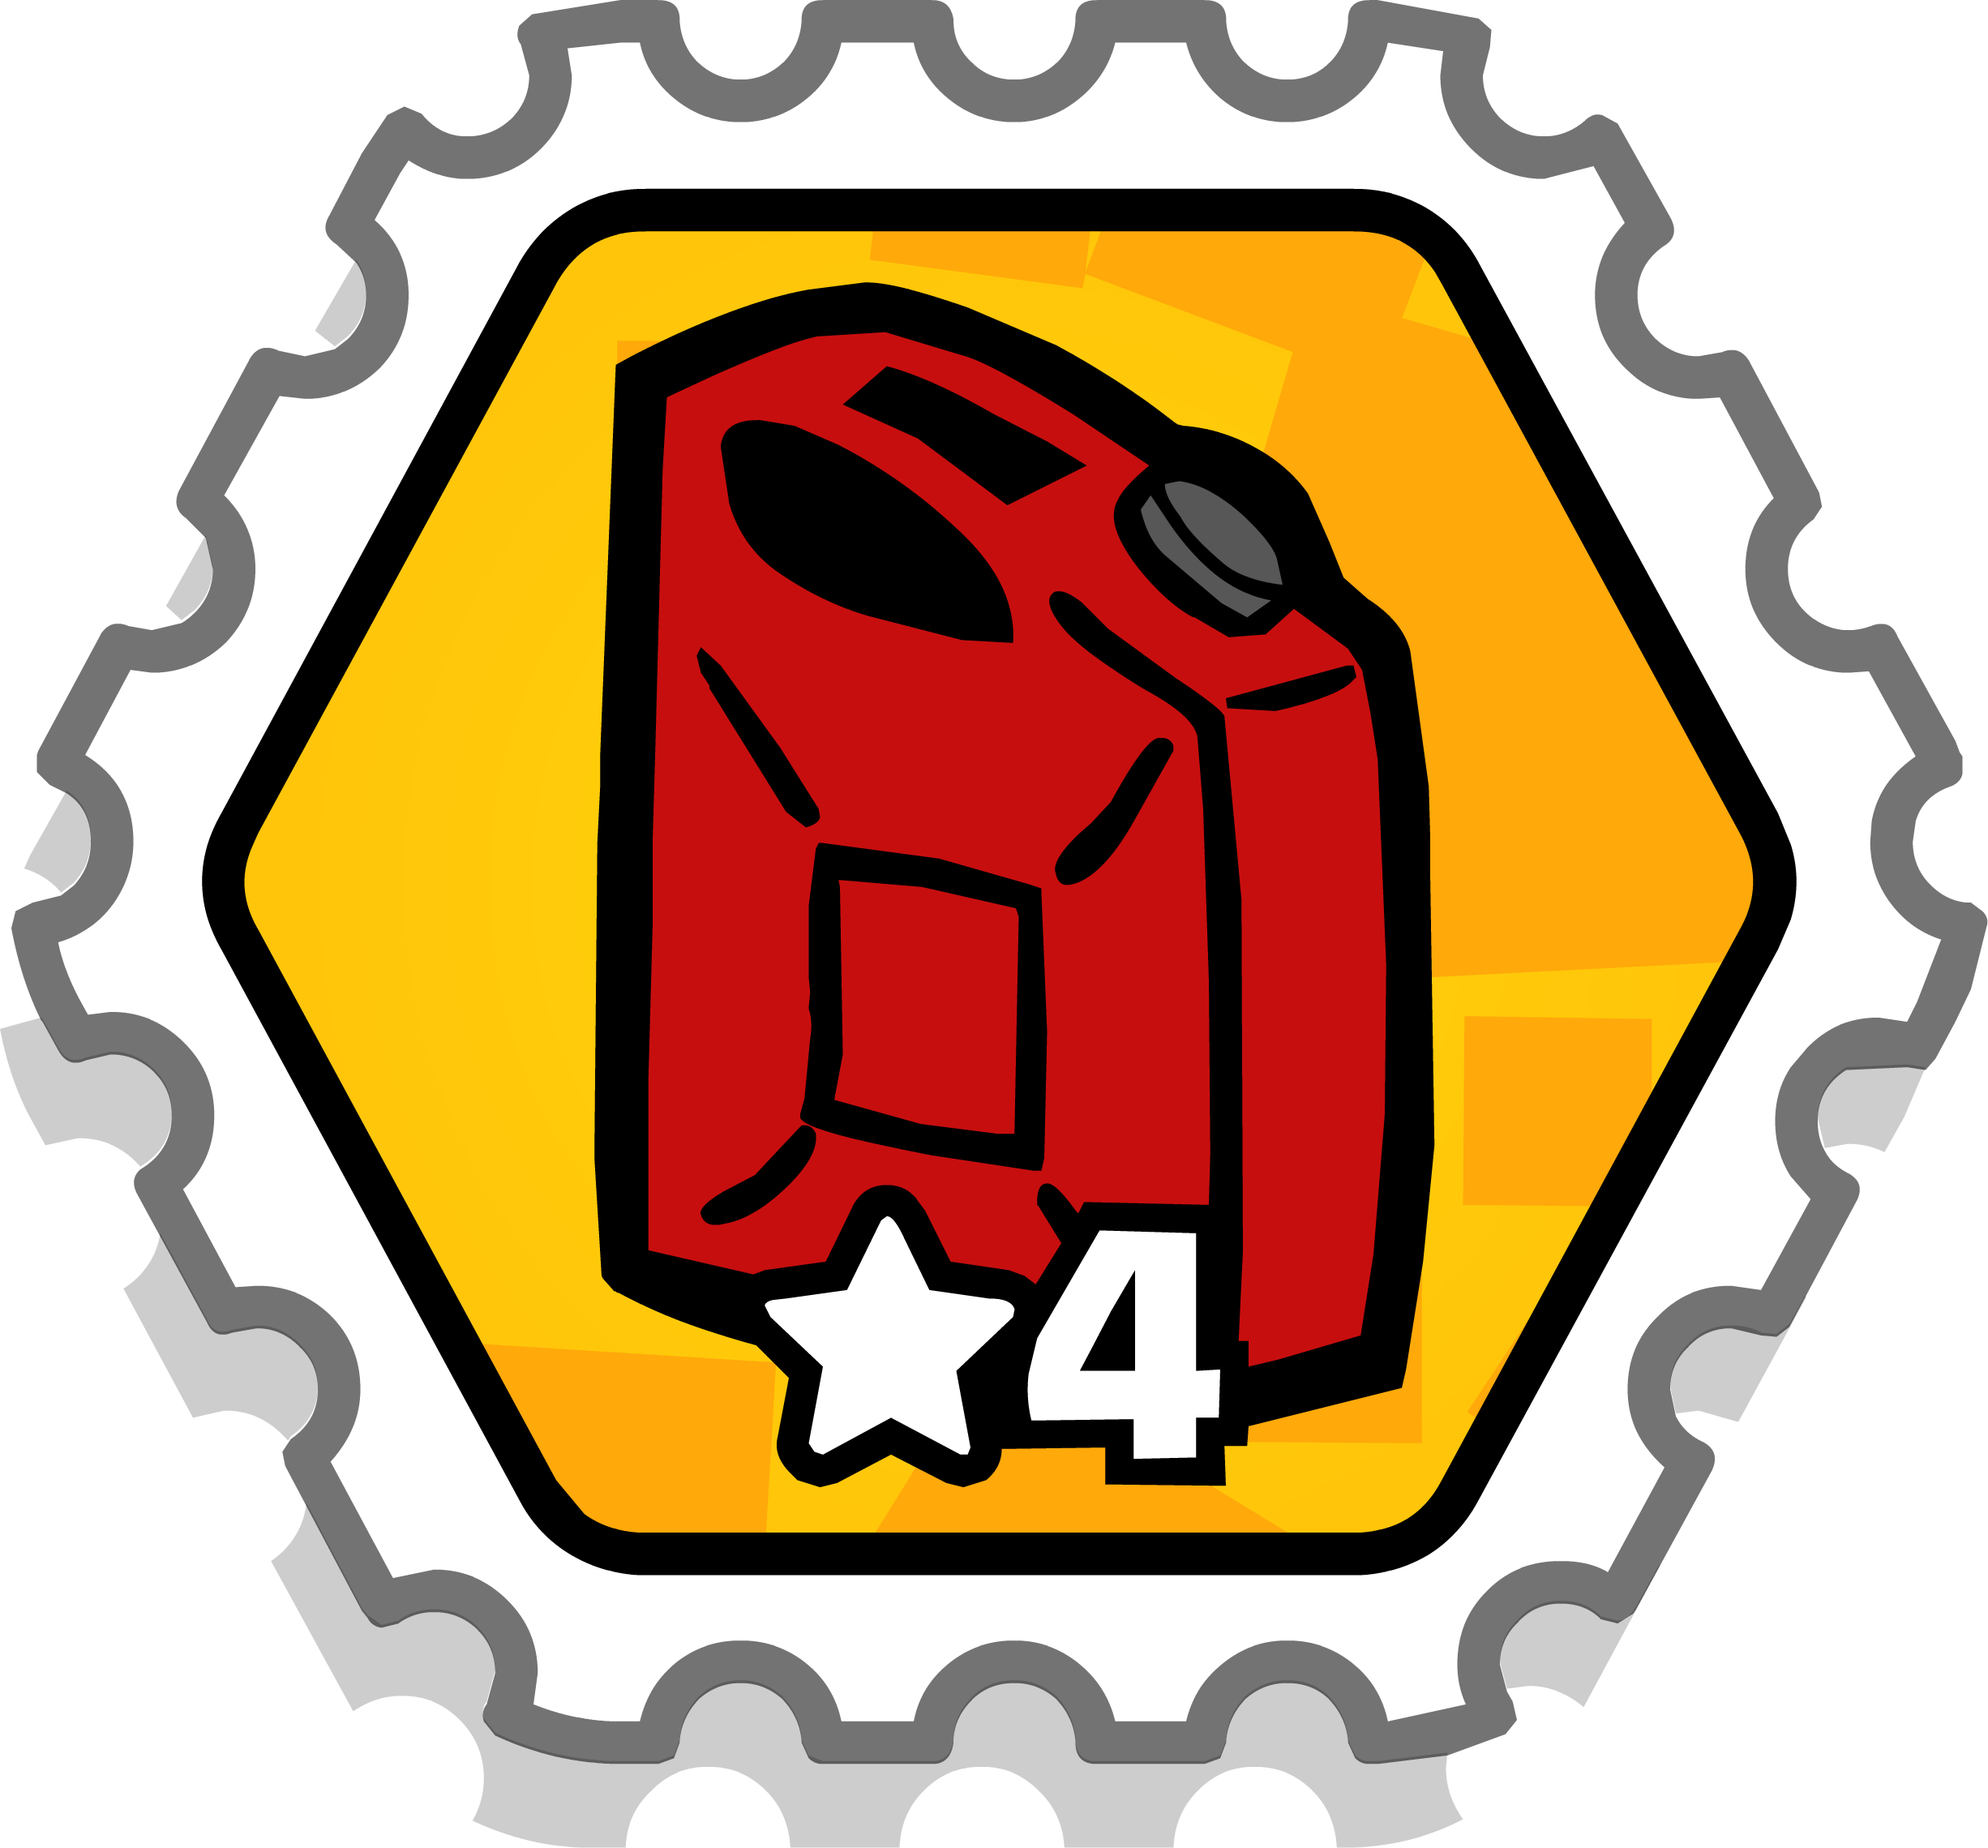 File:Fuel Rank 4 stamp for infobox.png